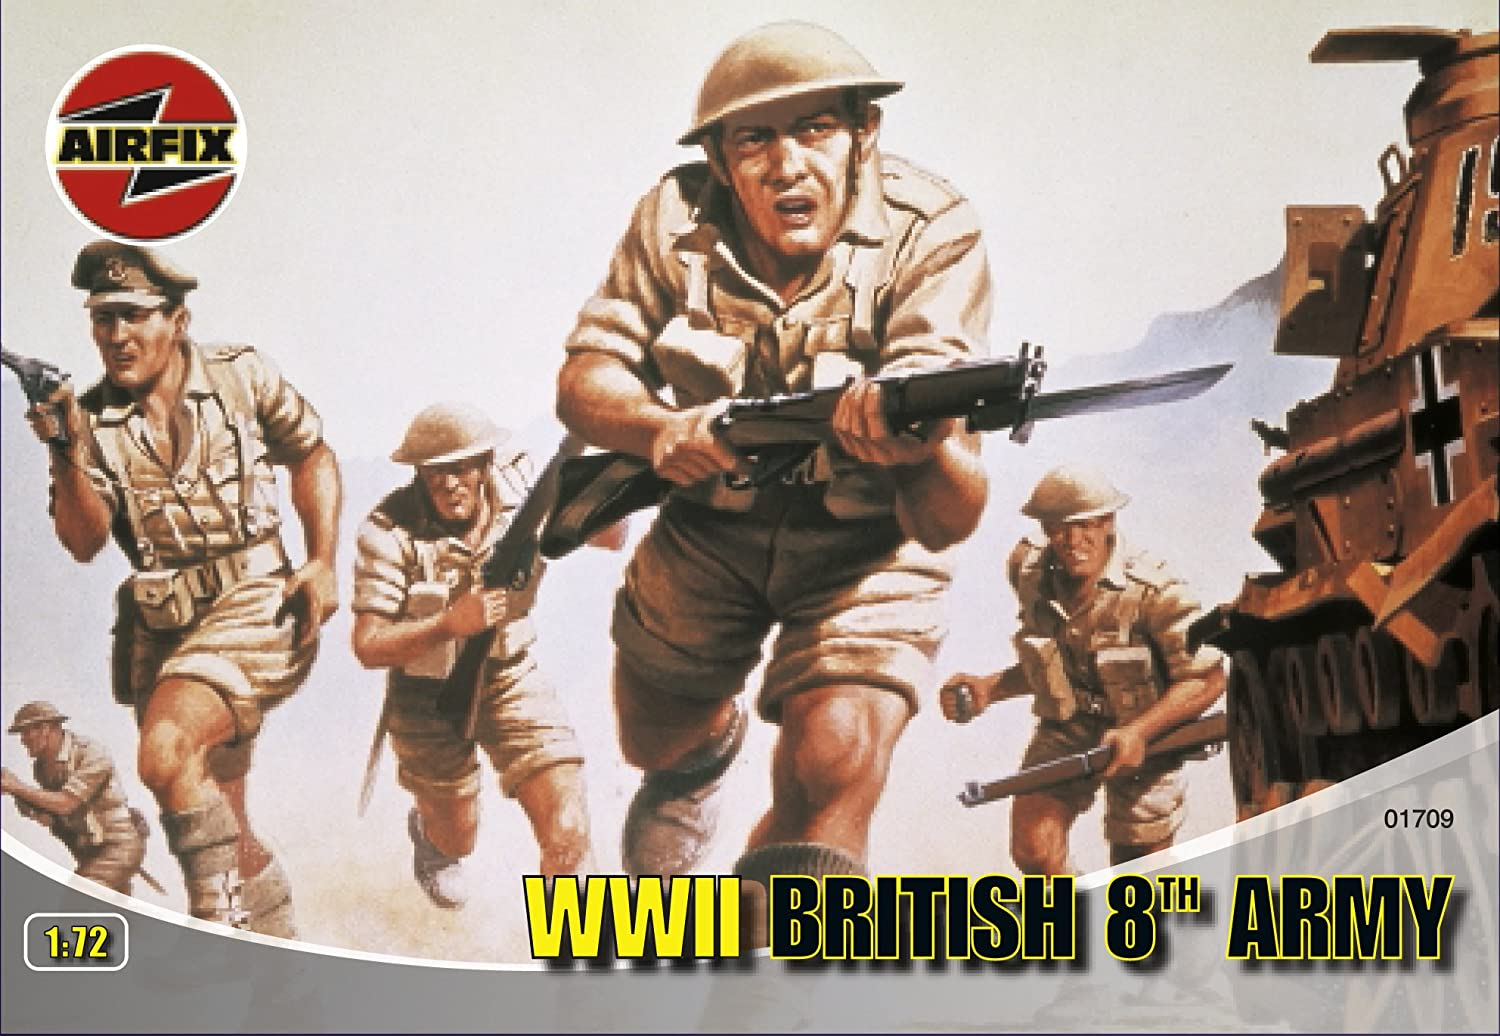 Airfix A01709 WWII British 8th Army 1:72 Scale Series 1 Plastic Figures Airfix World War II Figures B0002HZVP0 Arts and Crafts Arts_and_Crafts